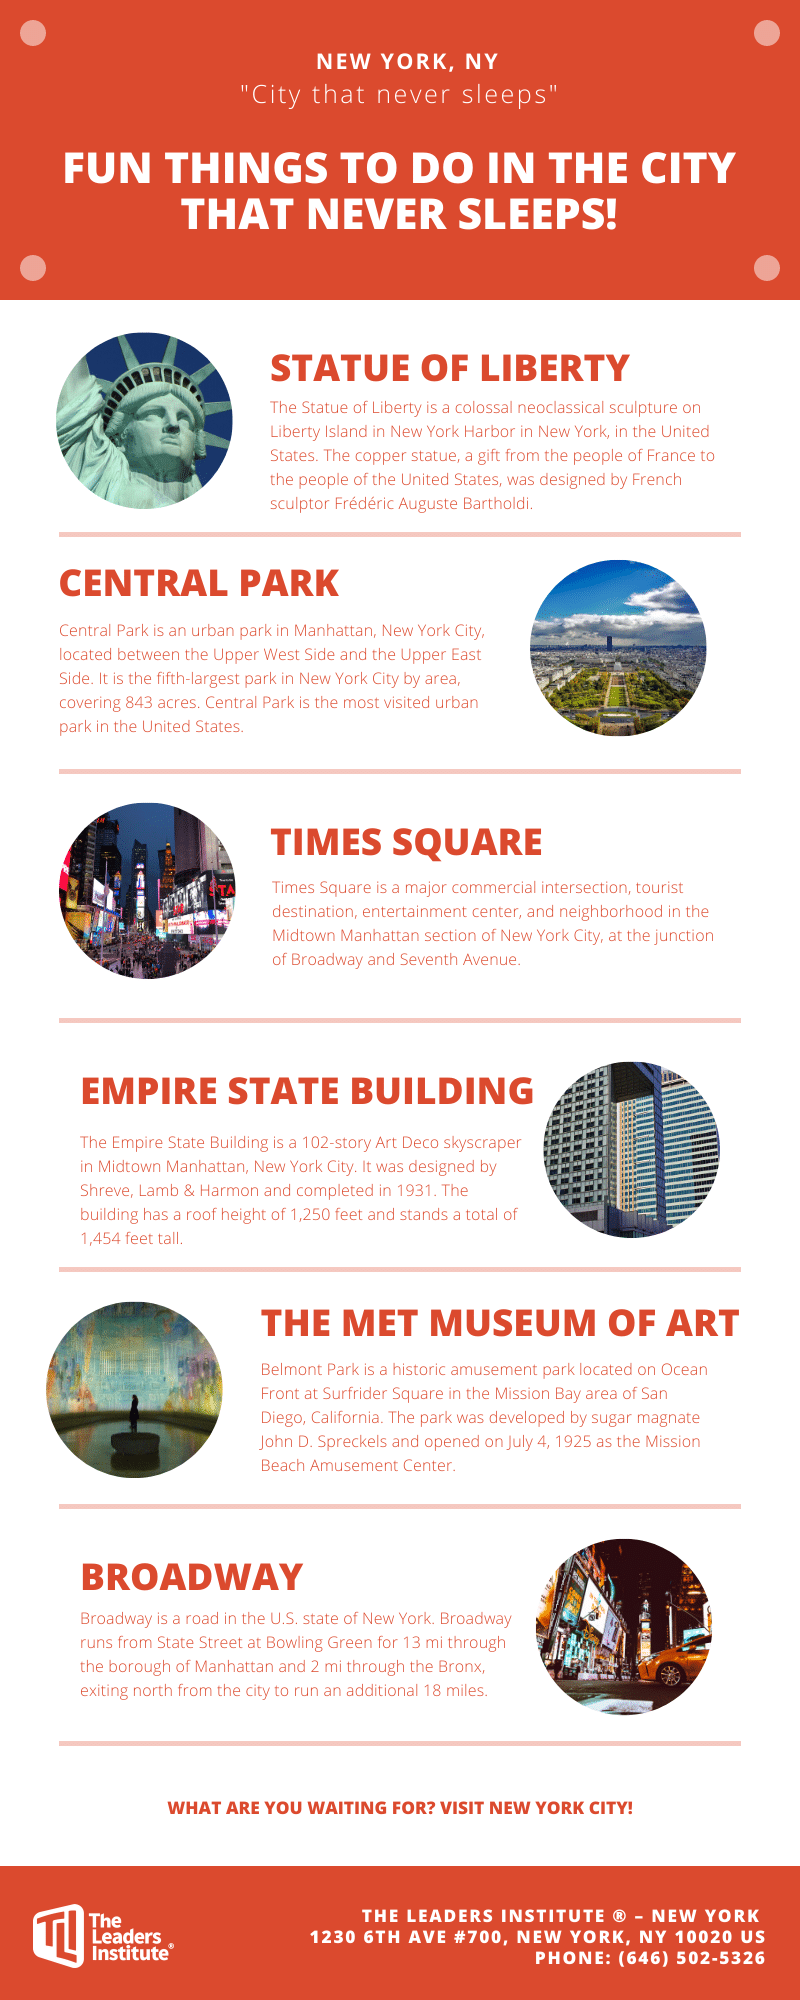 Fun Things To Do In New York City